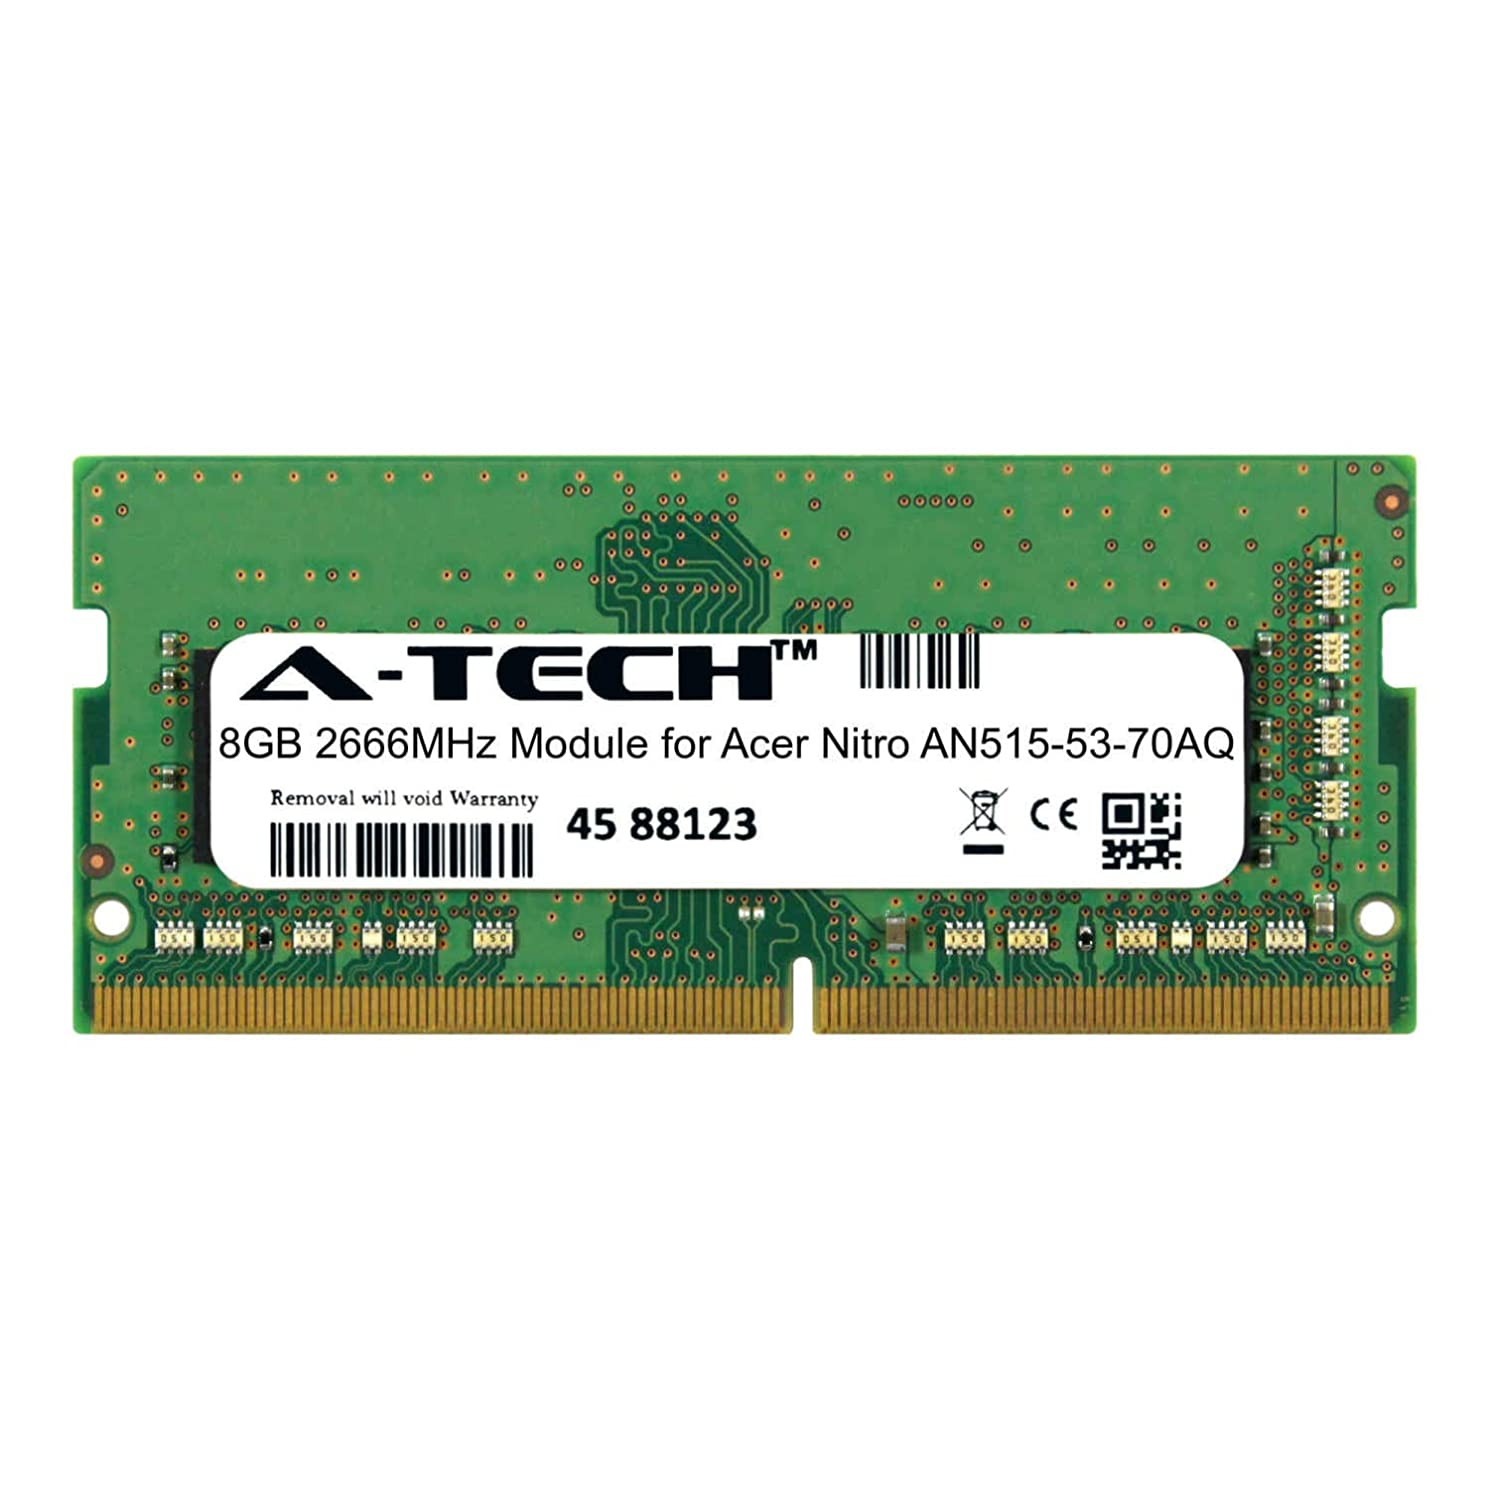 A-Tech 8GB Module for Acer Nitro AN515-53-70AQ Laptop & Notebook Compatible DDR4 2666Mhz Memory Ram (ATMS279656A25978X1)